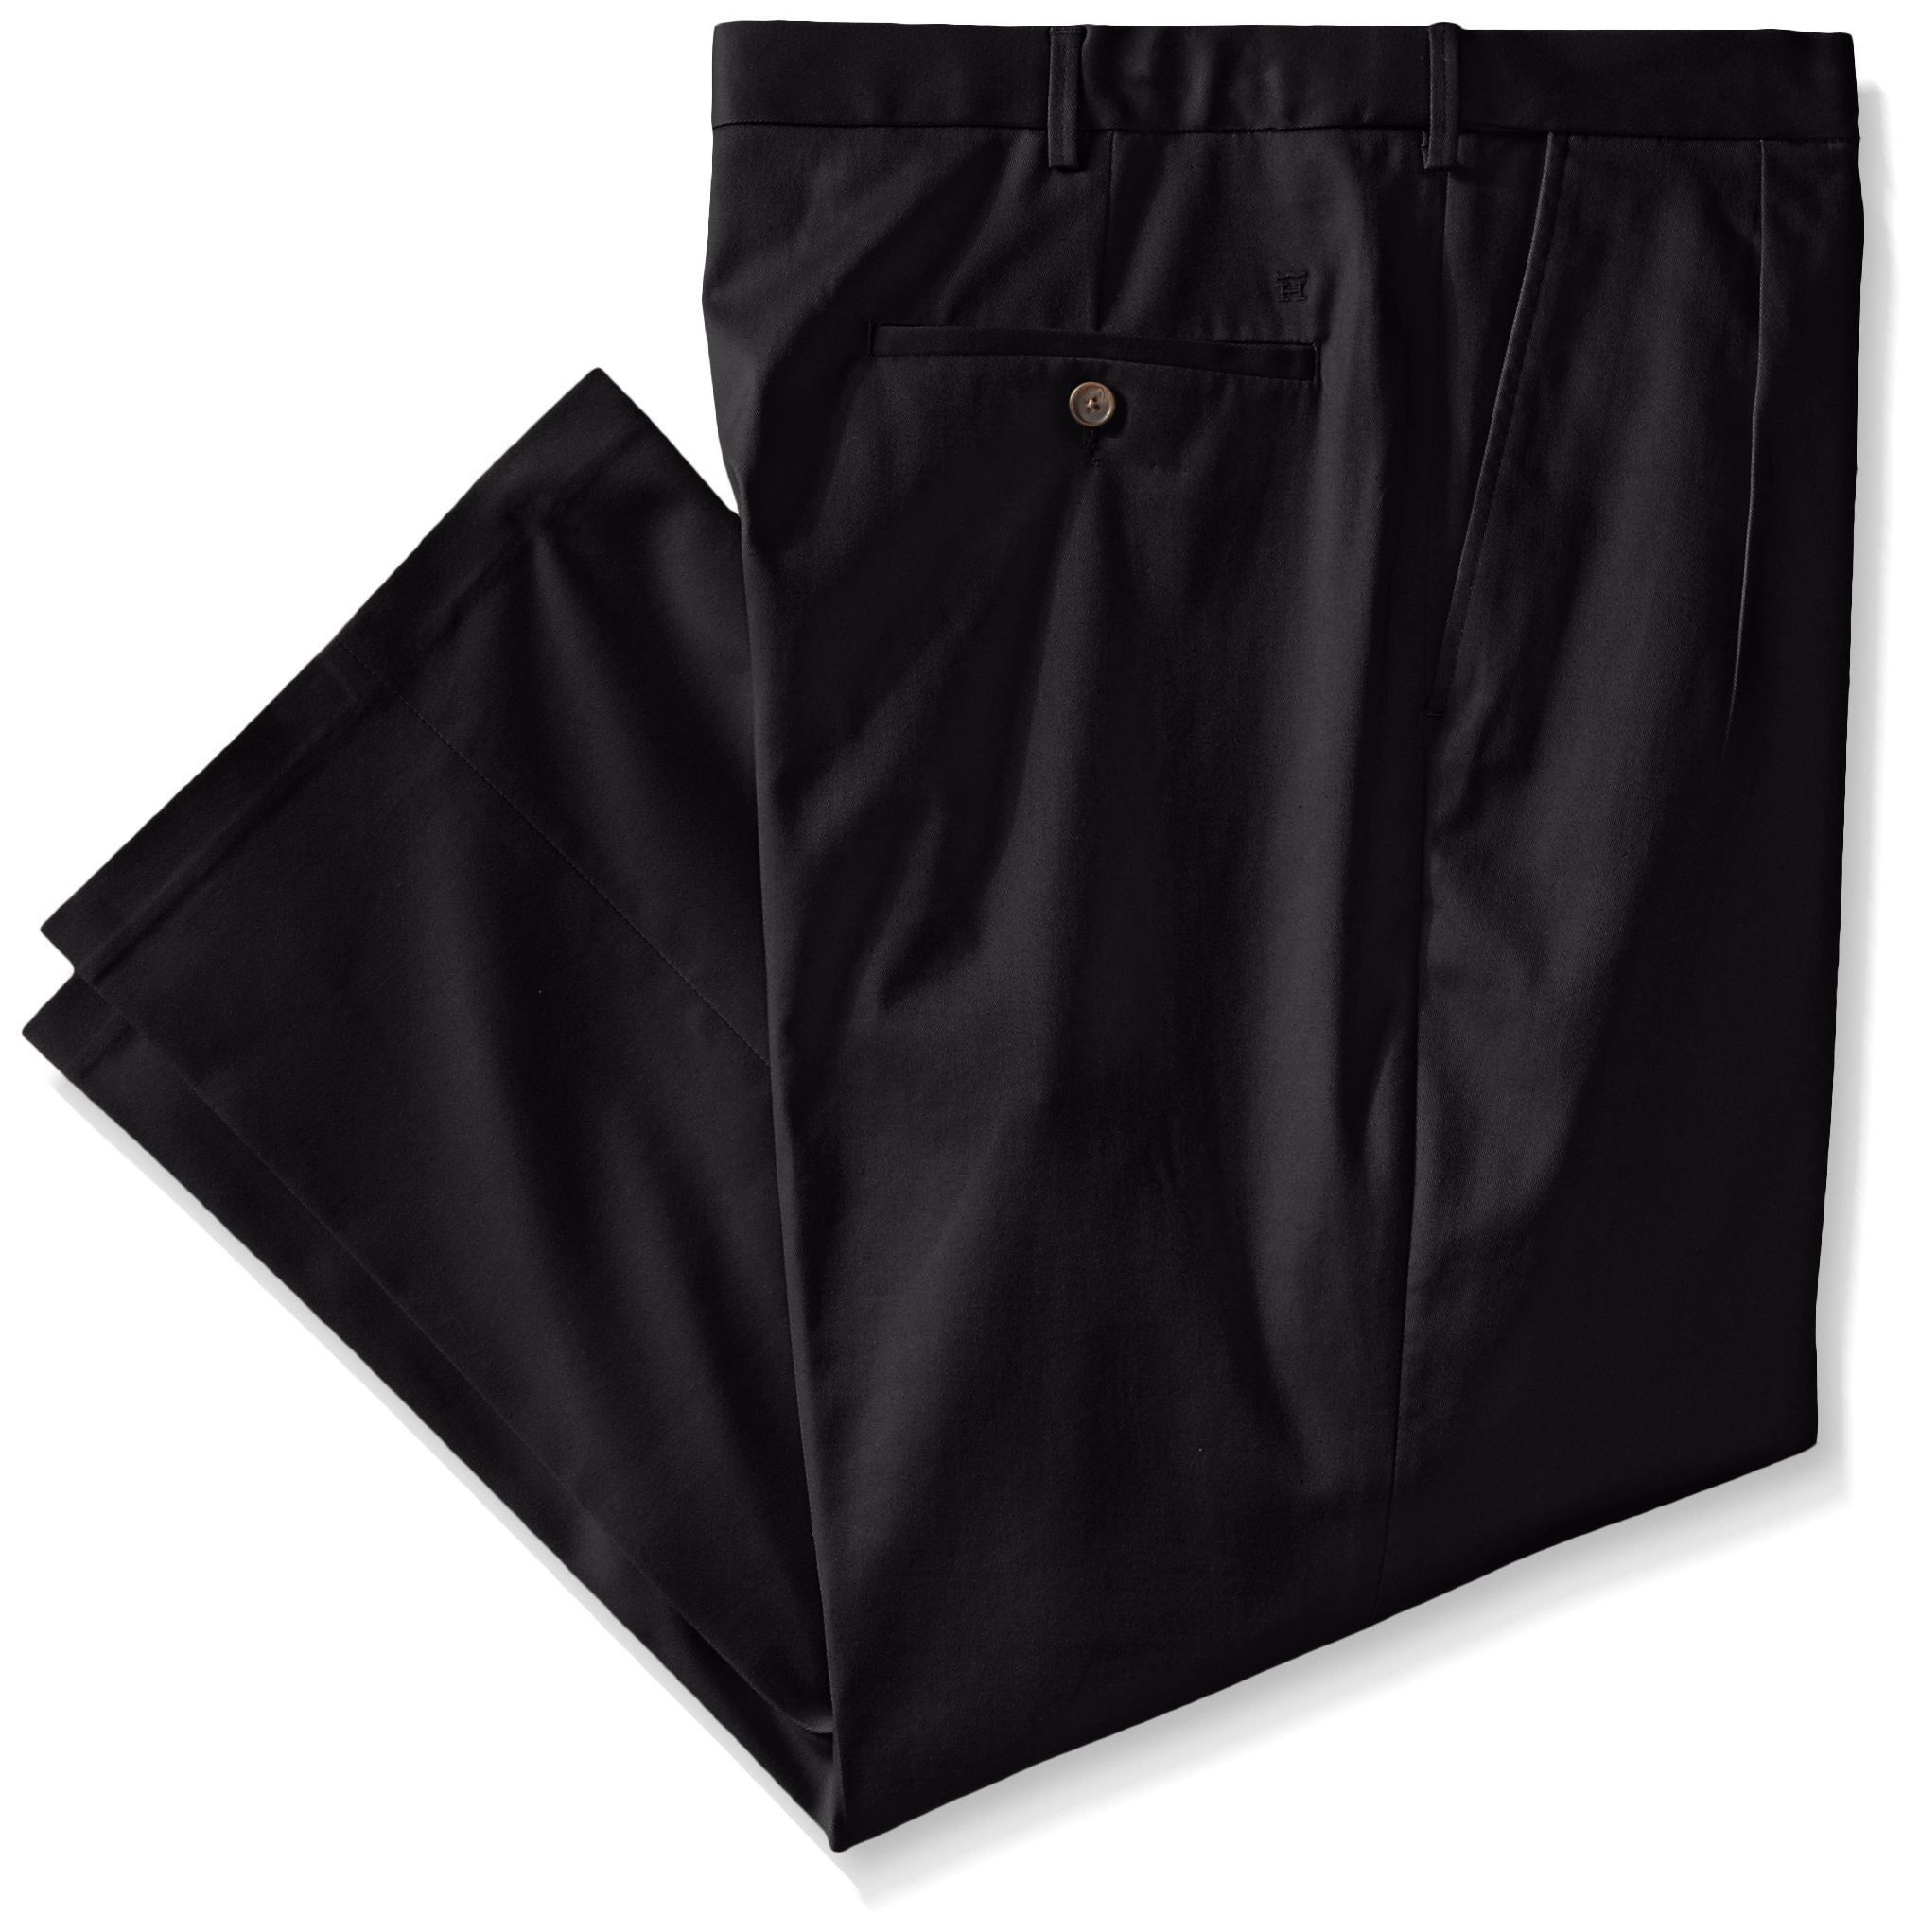 Haggar Men's Big-Tall Premium No Iron Classic Fit Pleat Front Pant, Black, 58x30